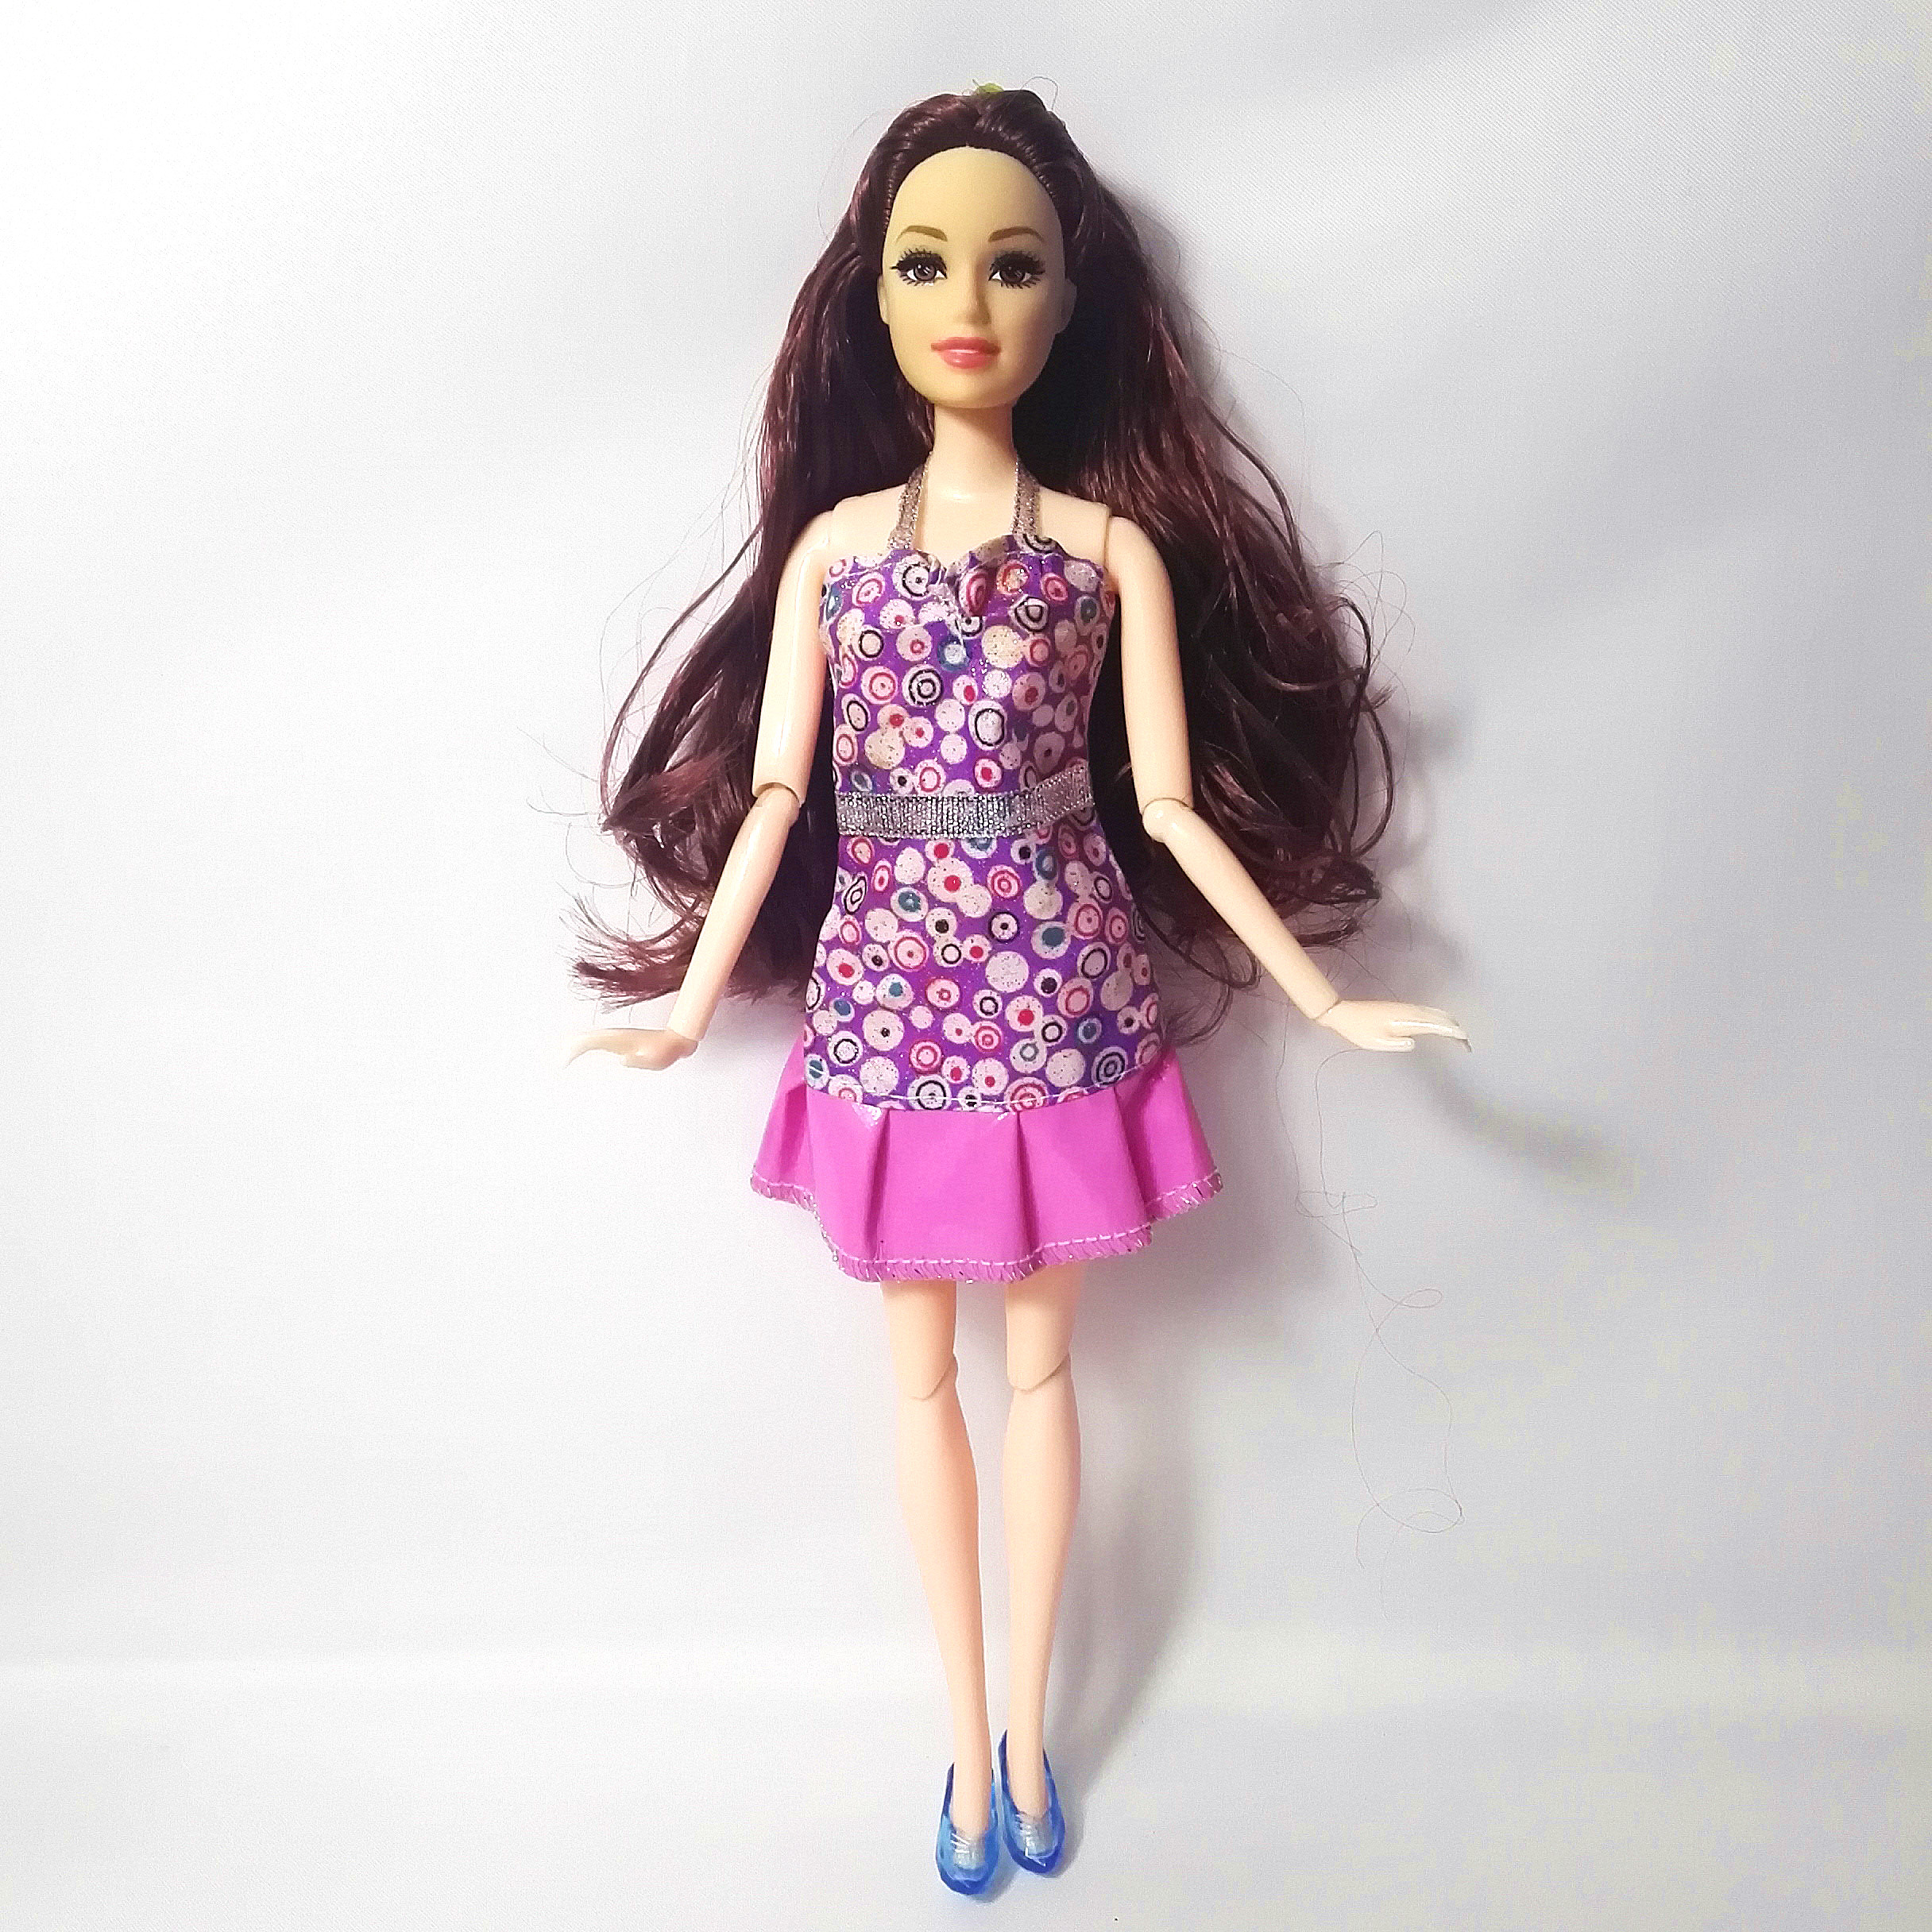 Newest Original Doll Clothes Beautiful Handmade Party Outfit Fashion